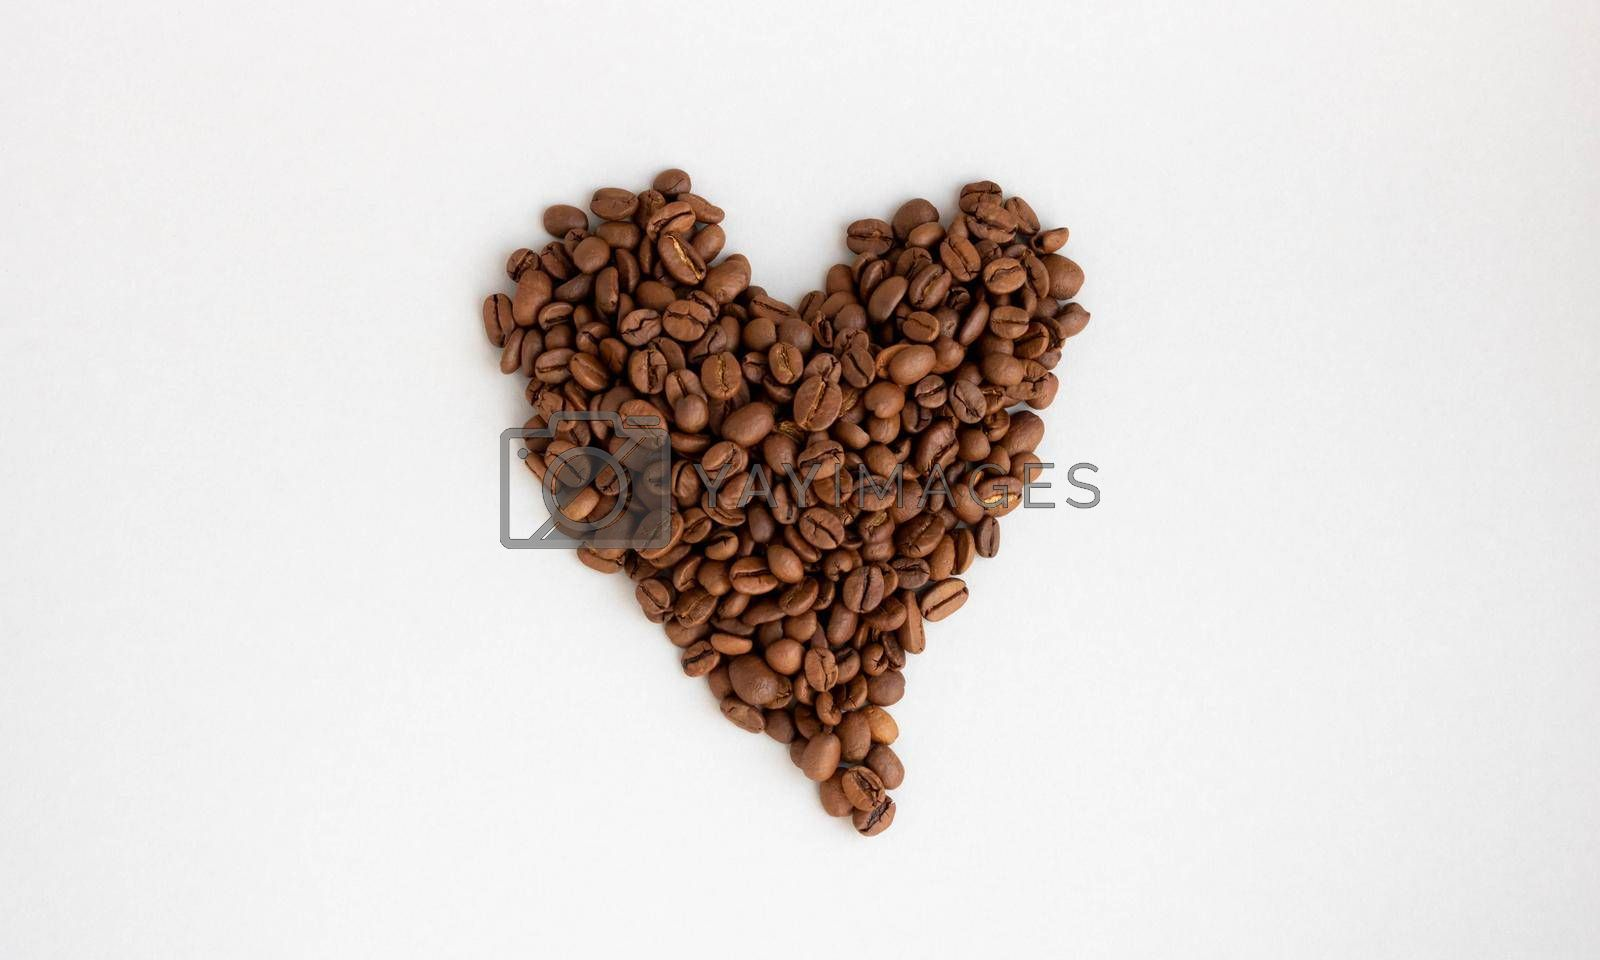 Heart-shaped coffee beans isolated on a gray background.